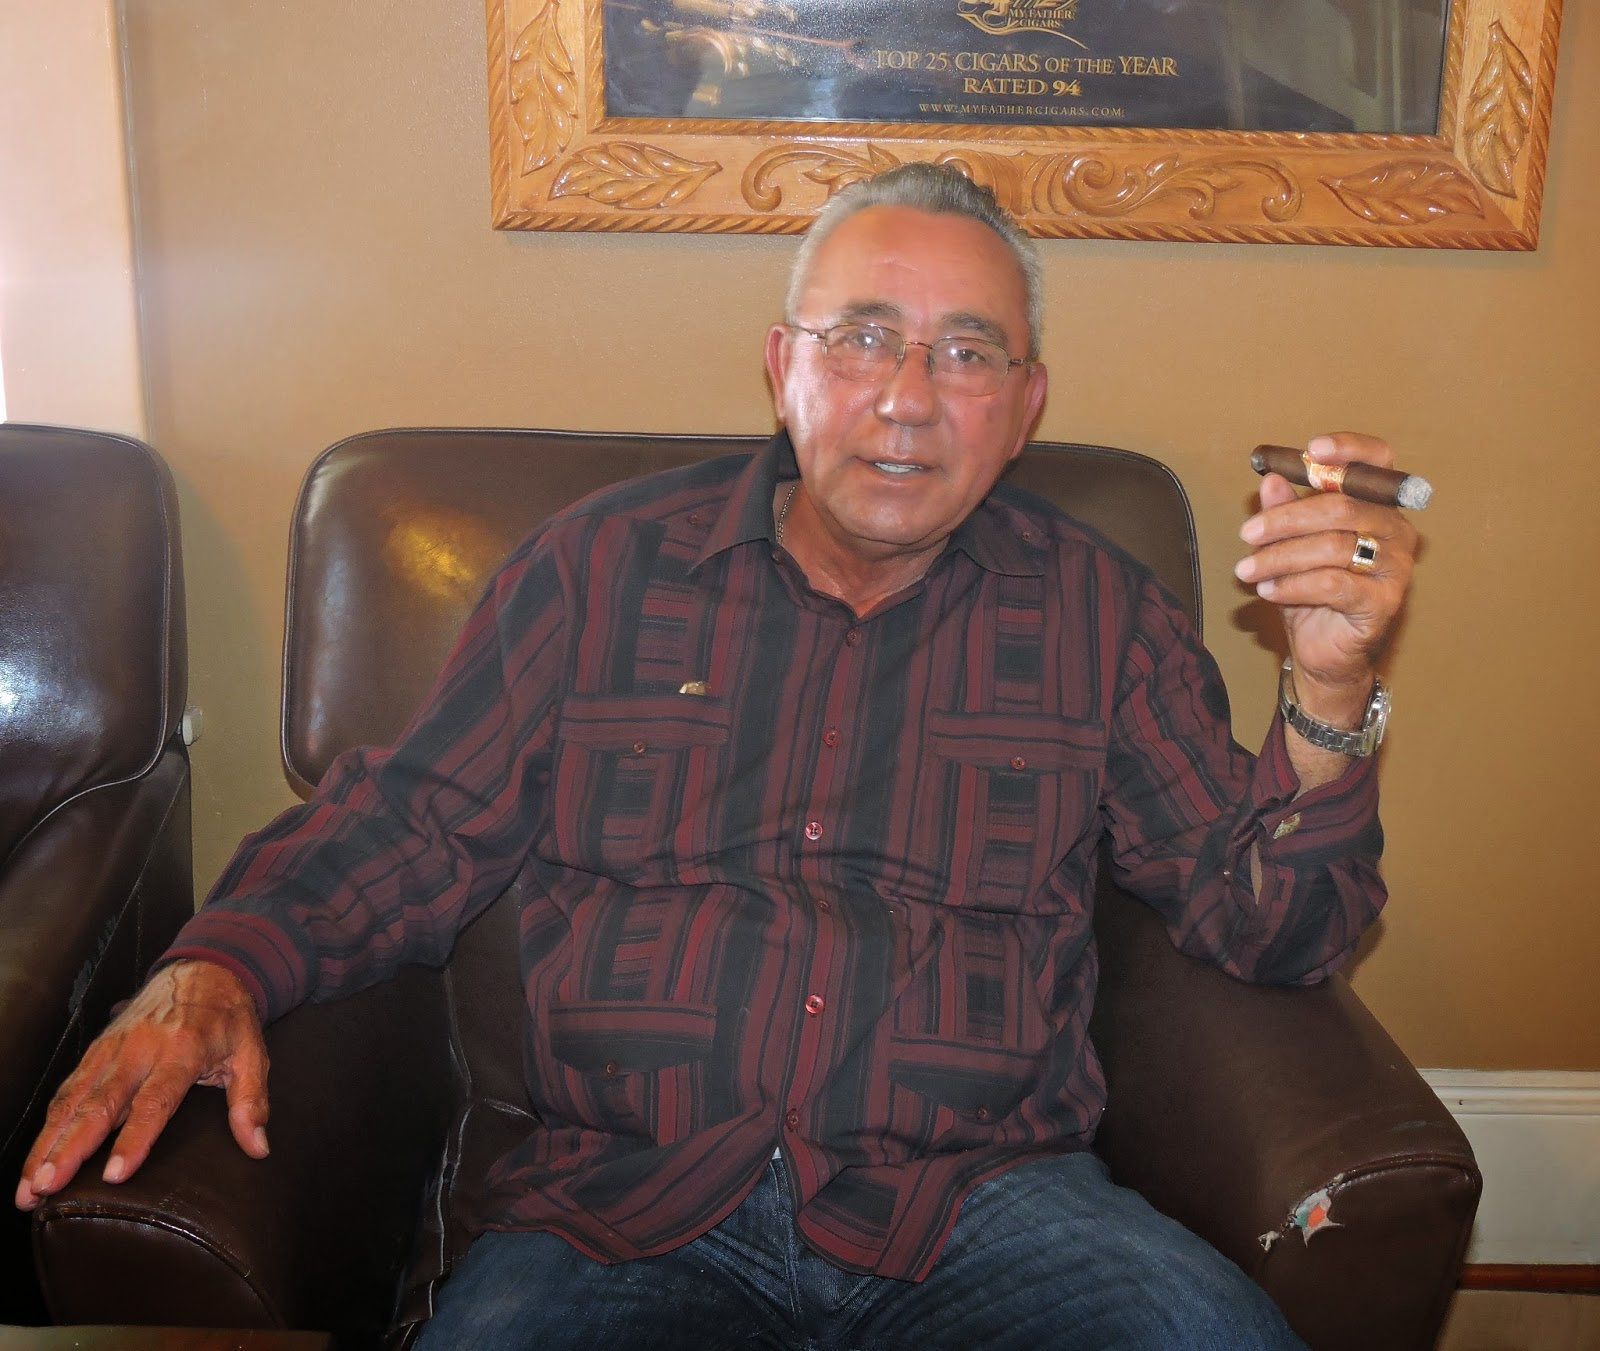 Feature Story: Don Pepin Garcia Talks About El Rey de los Habanos and More